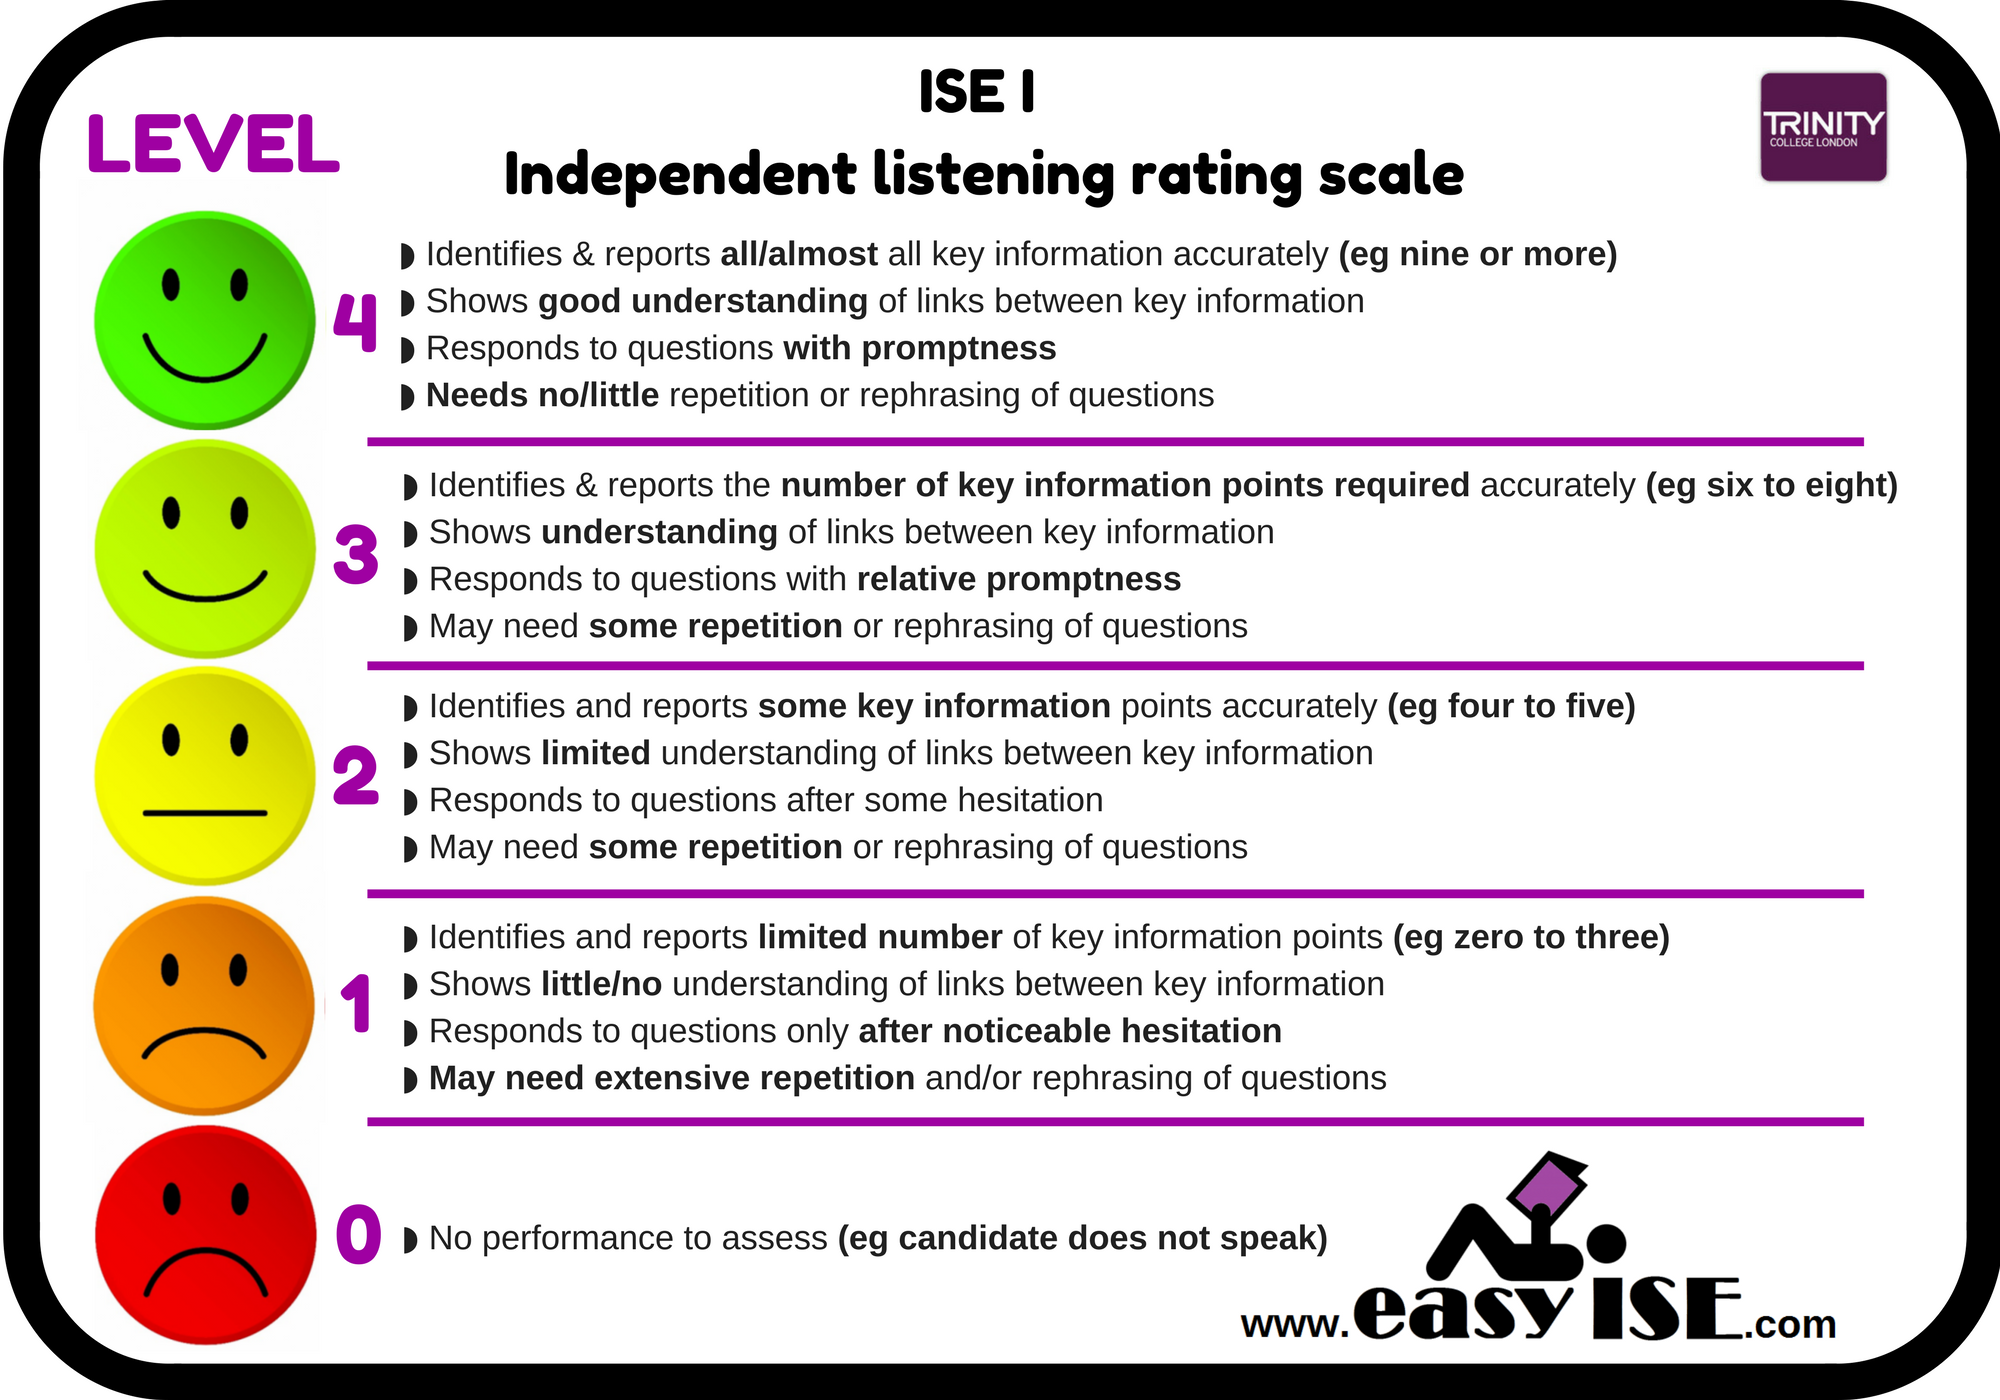 ISE I Trinity Independent listening rating scale exam - www.fingertipsenglish.com/trinity